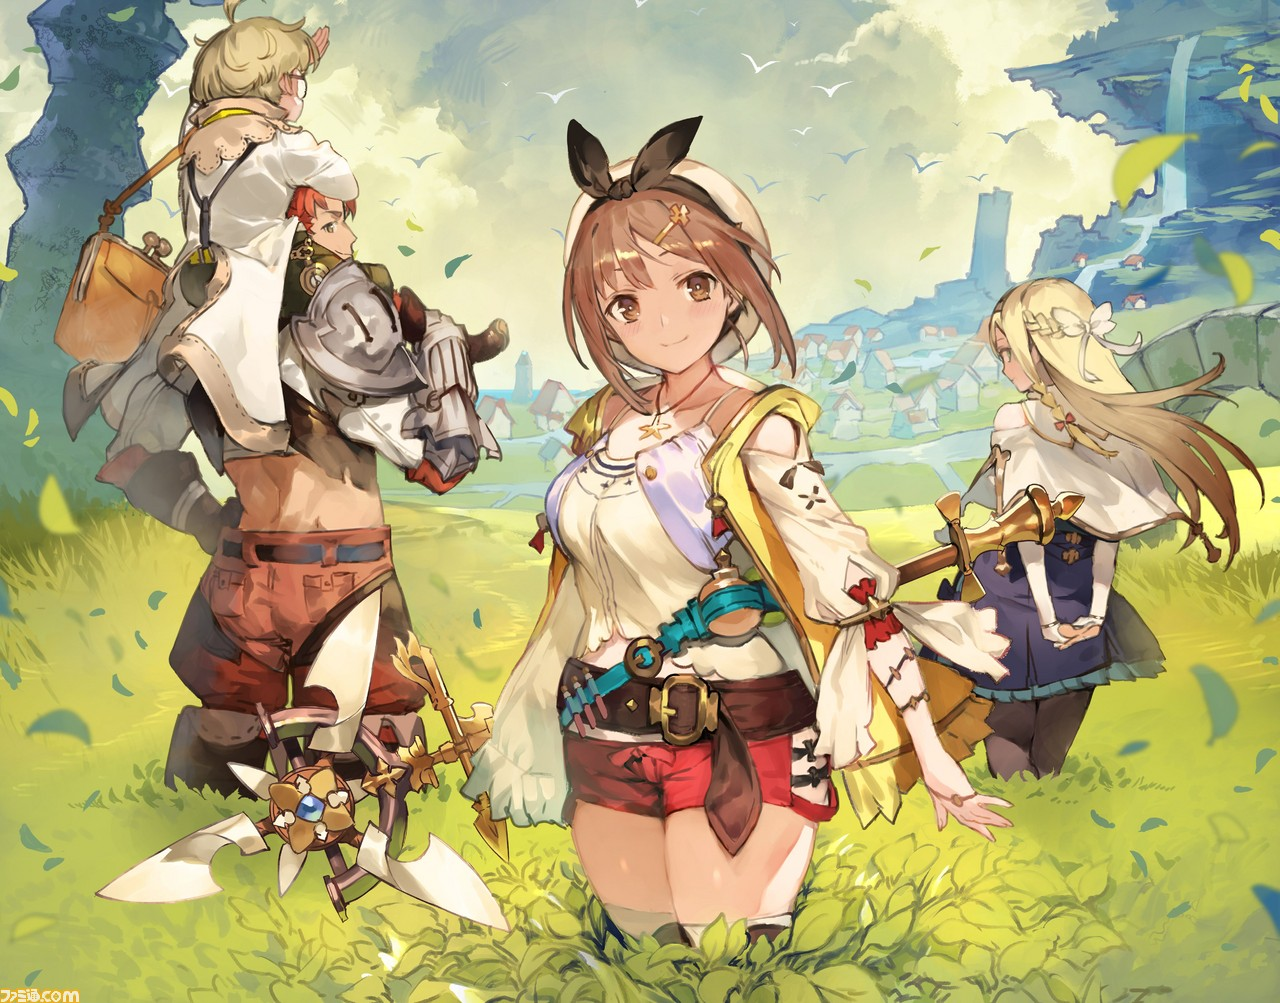 Koei Tecmo anuncia Atelier Ryza: The Queen of Eternal Darkness and the Secret Hideout para o Nintendo Switch